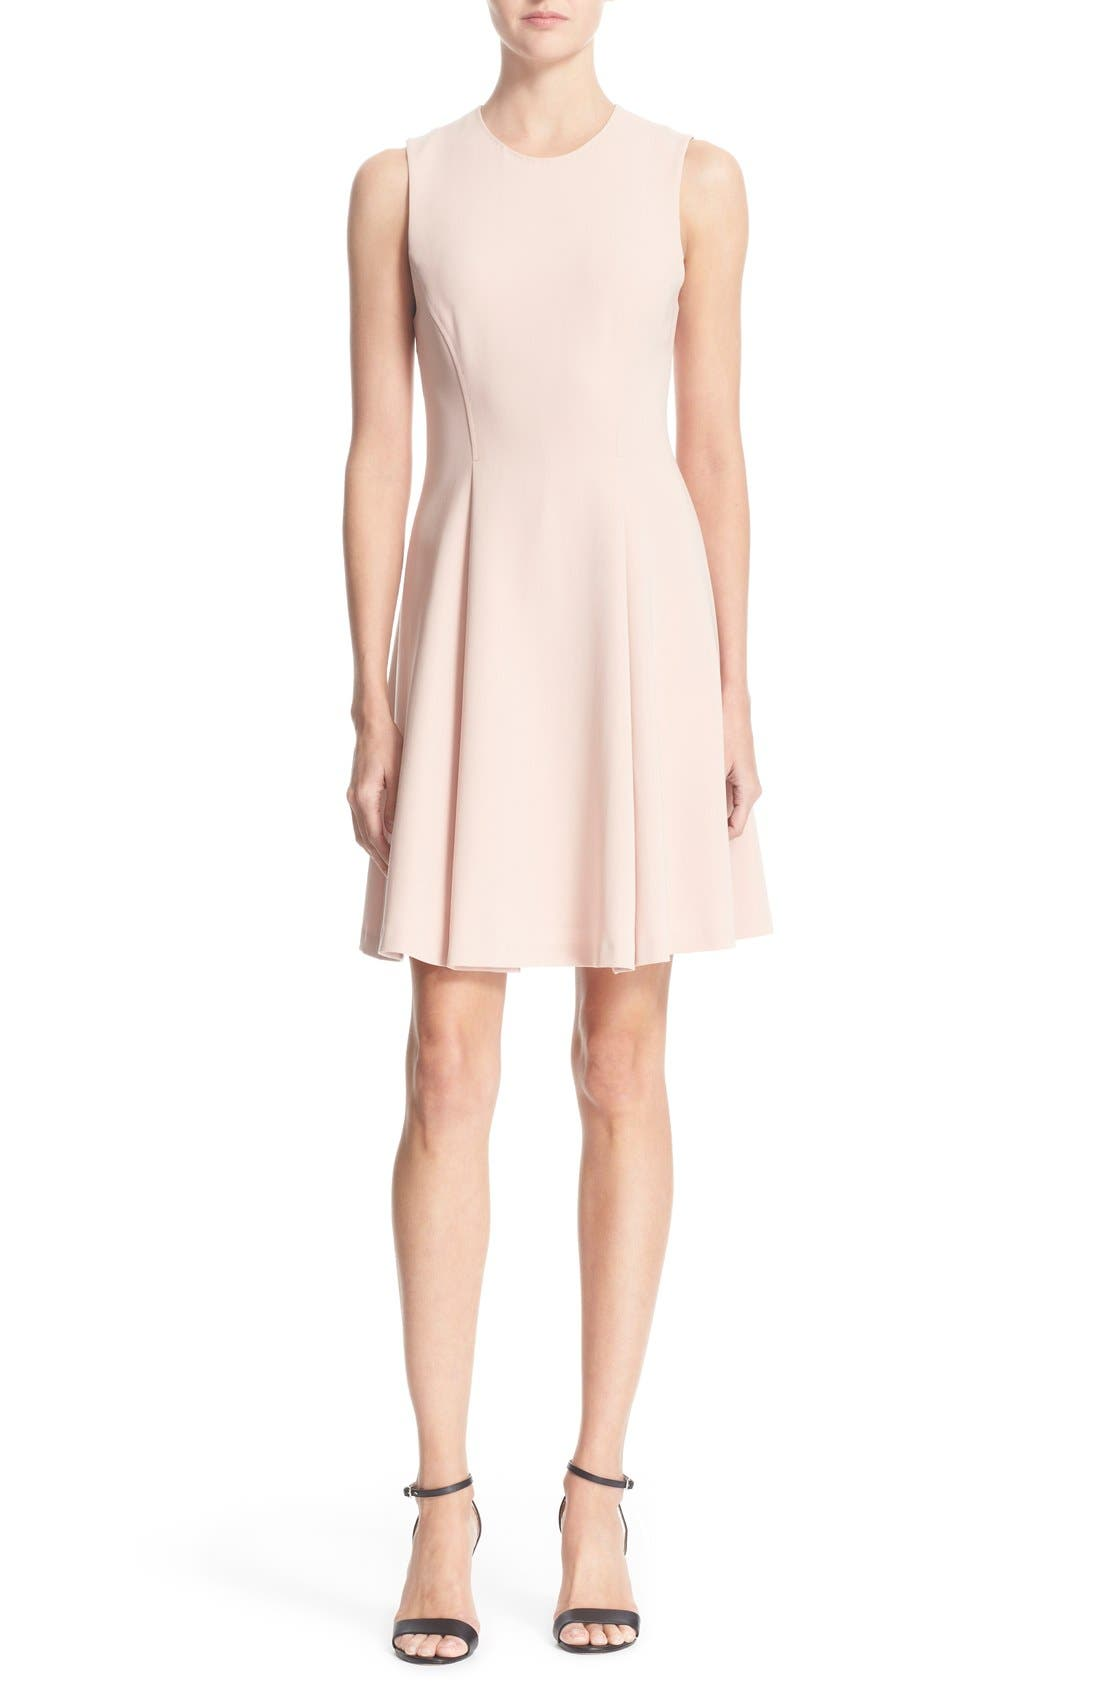 Alternate Image 1 Selected - Theory 'Tespa' Crepe Fit & Flare Dress